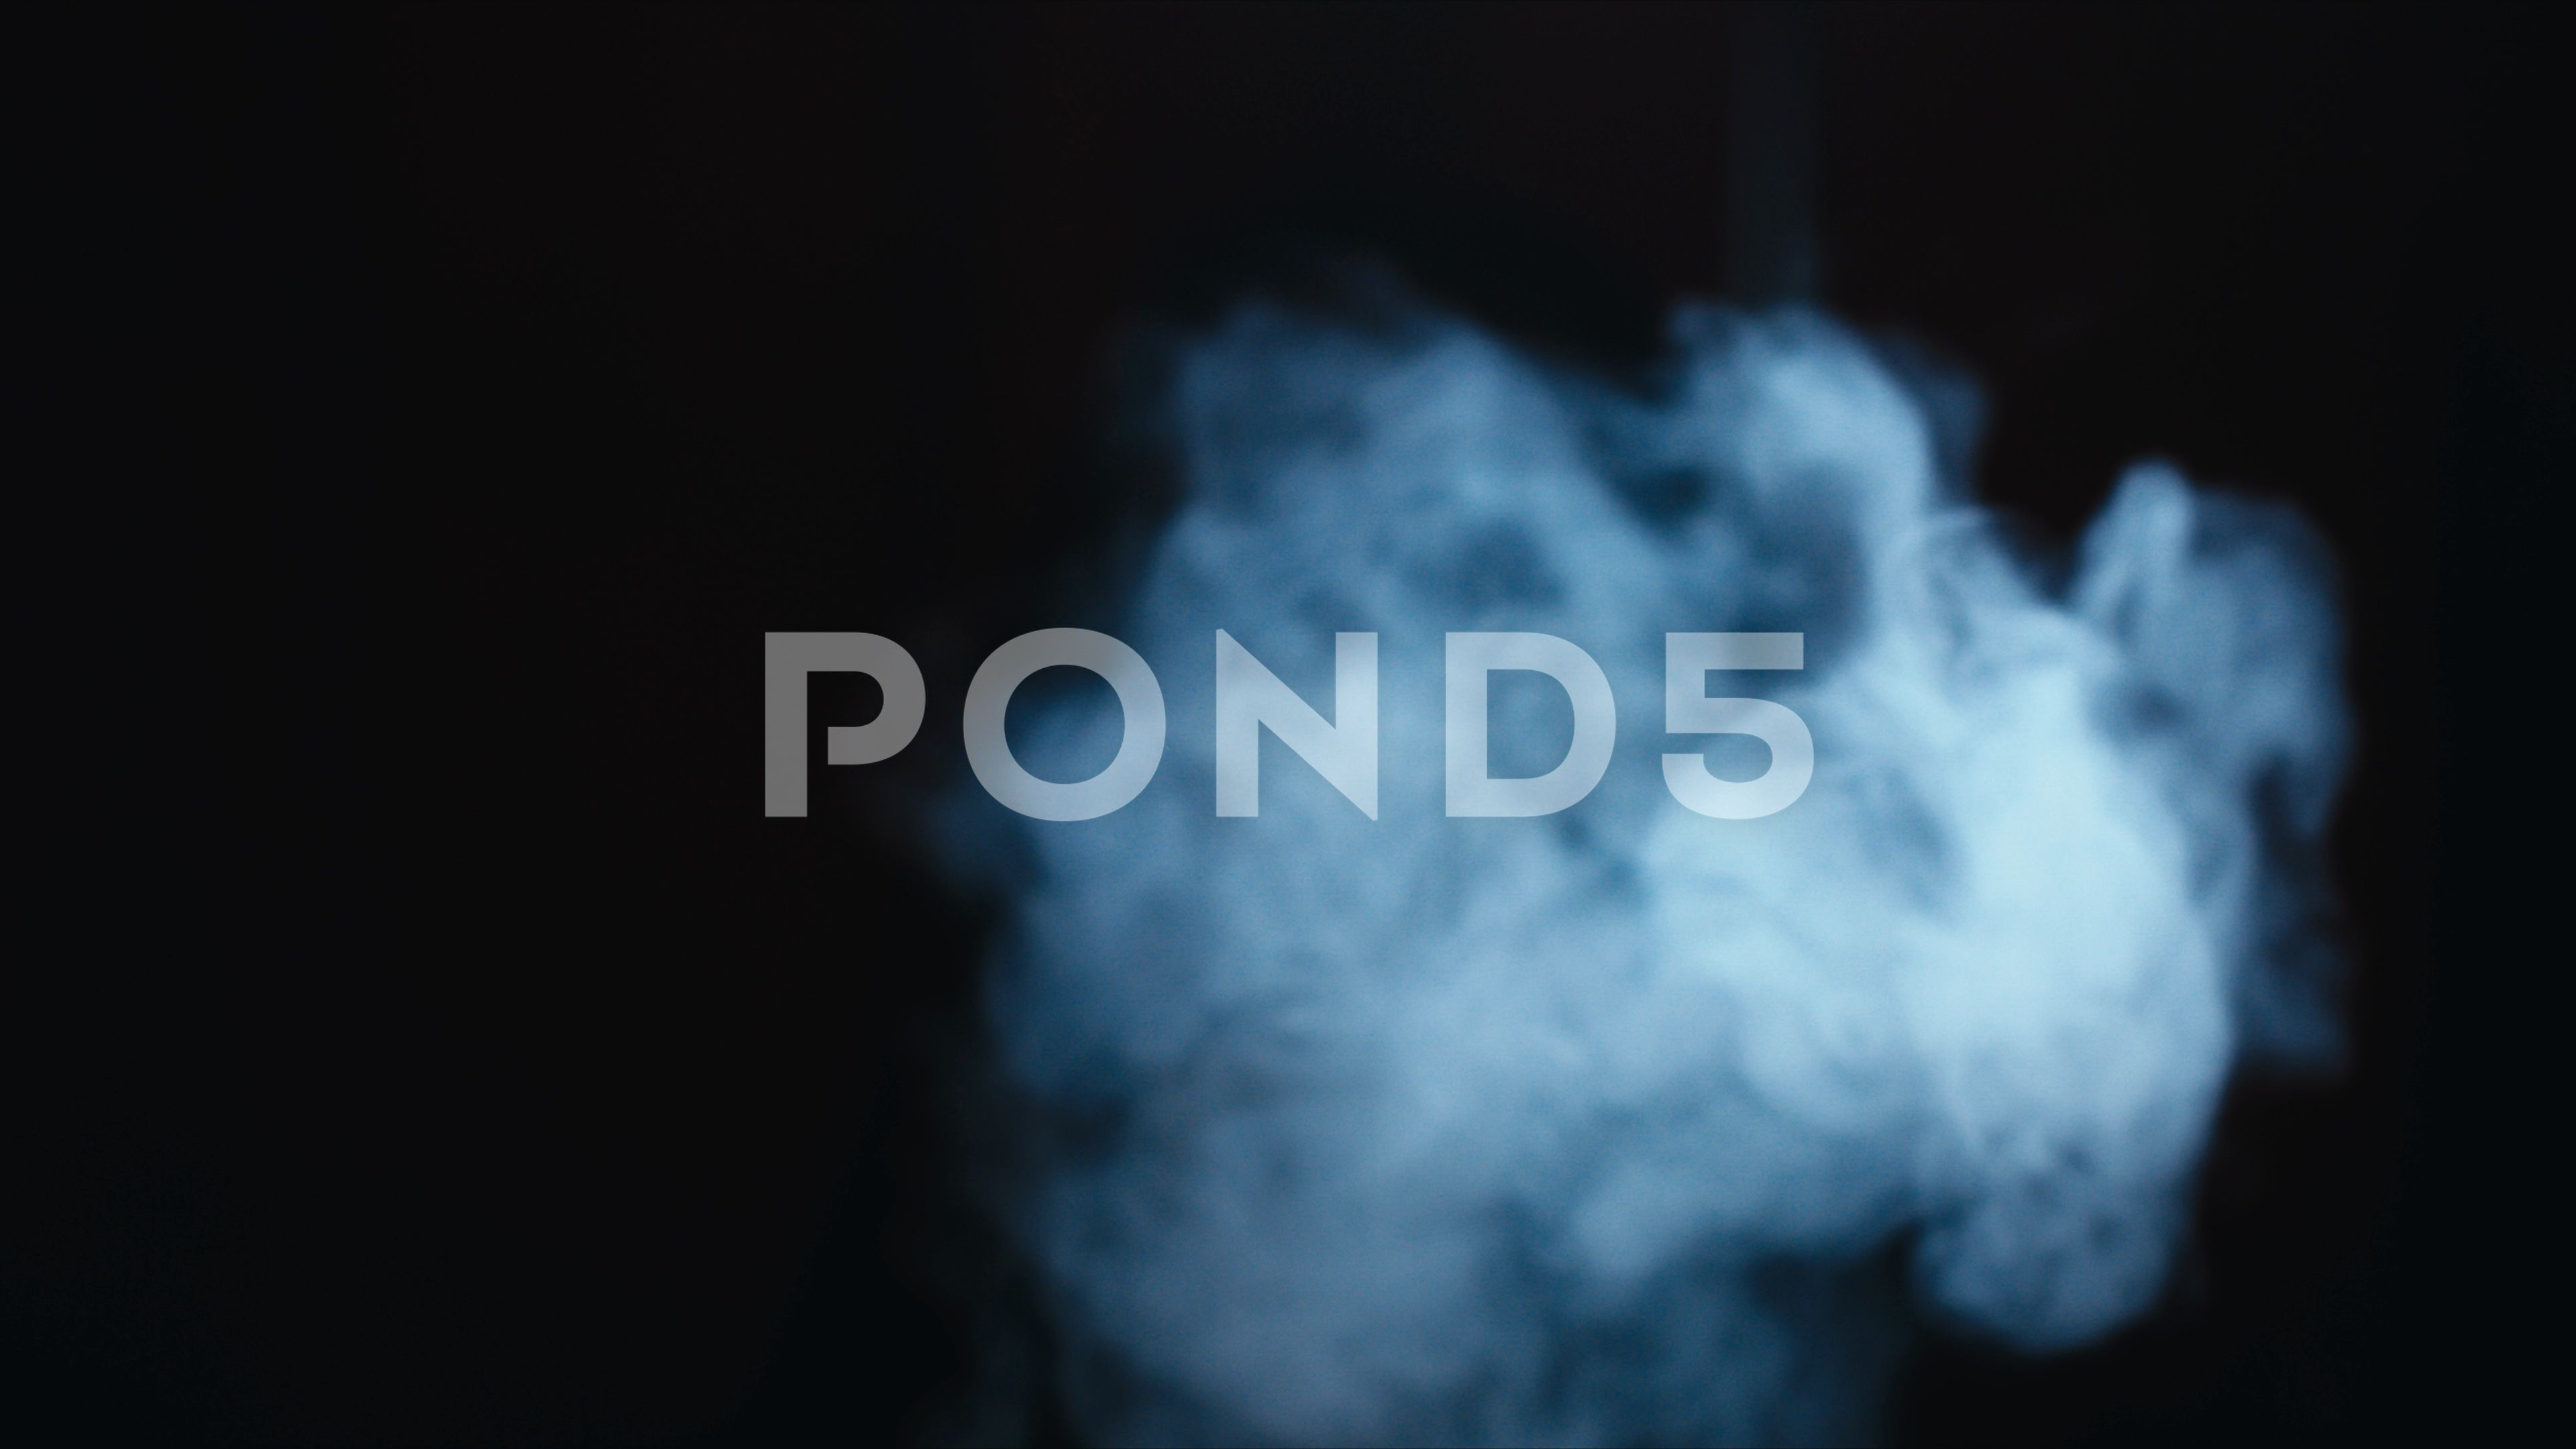 Cu Female Exhaling Smoke From A Vapor Into The Camera 4k Uhd Raw